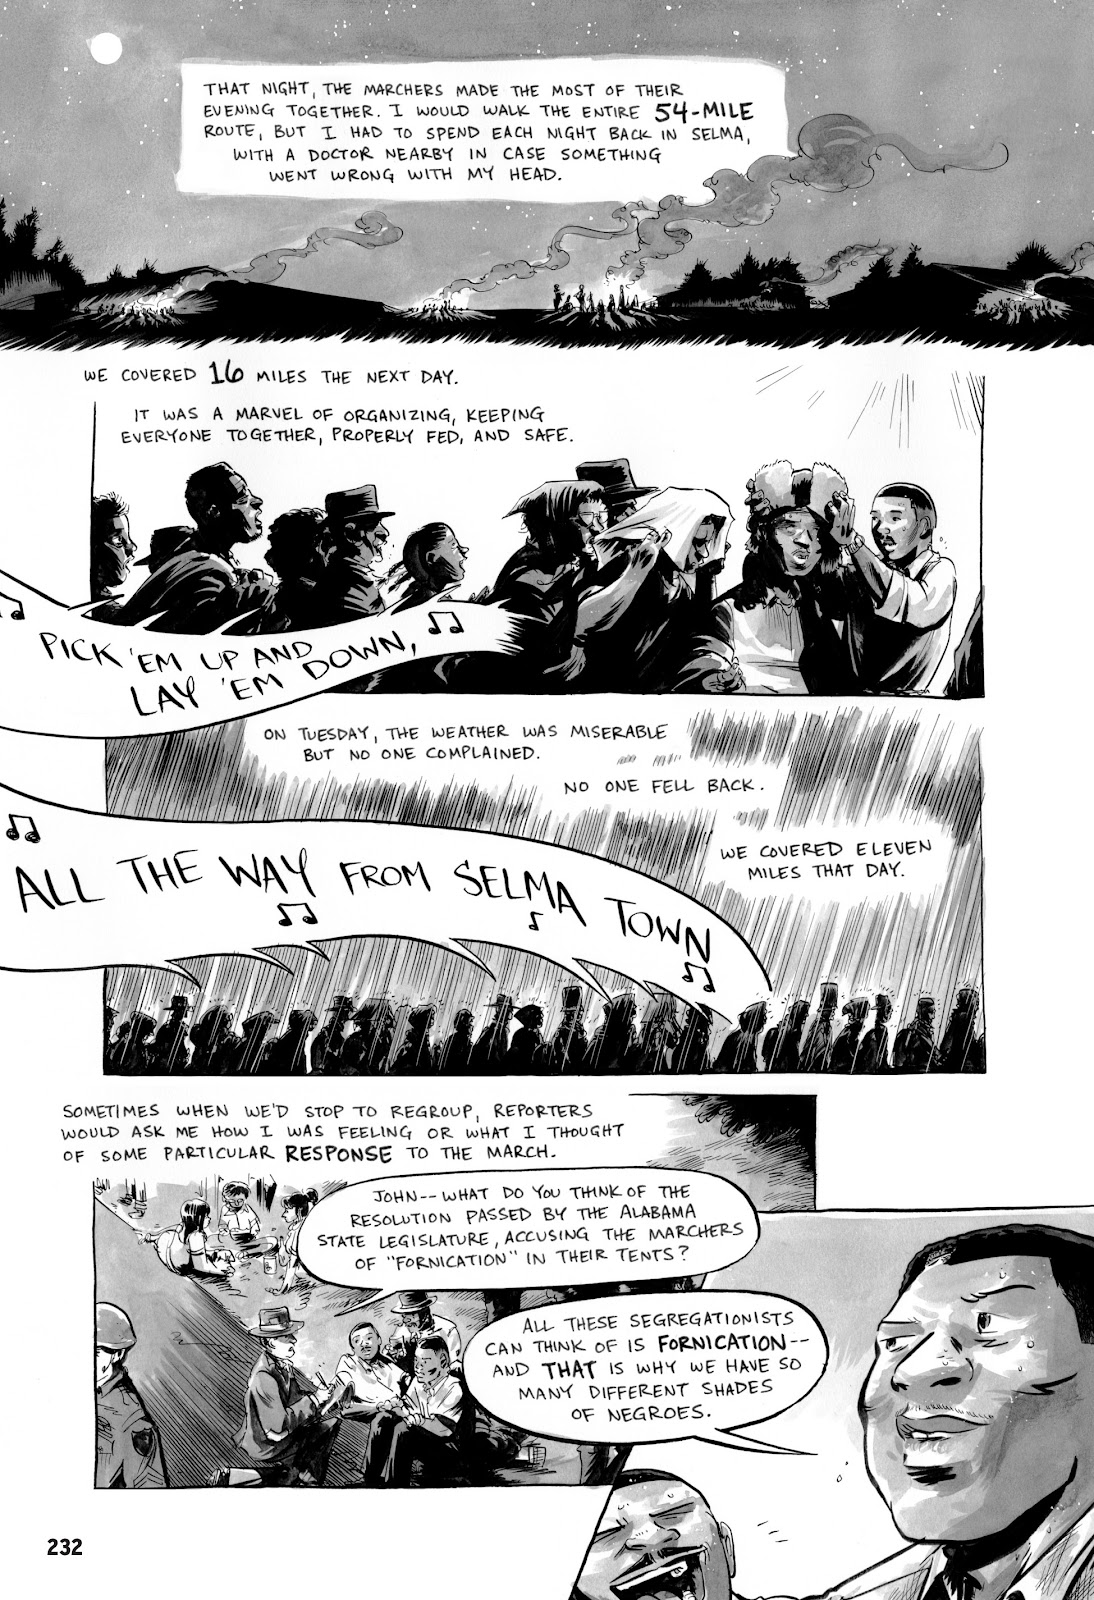 March 3 Page 226